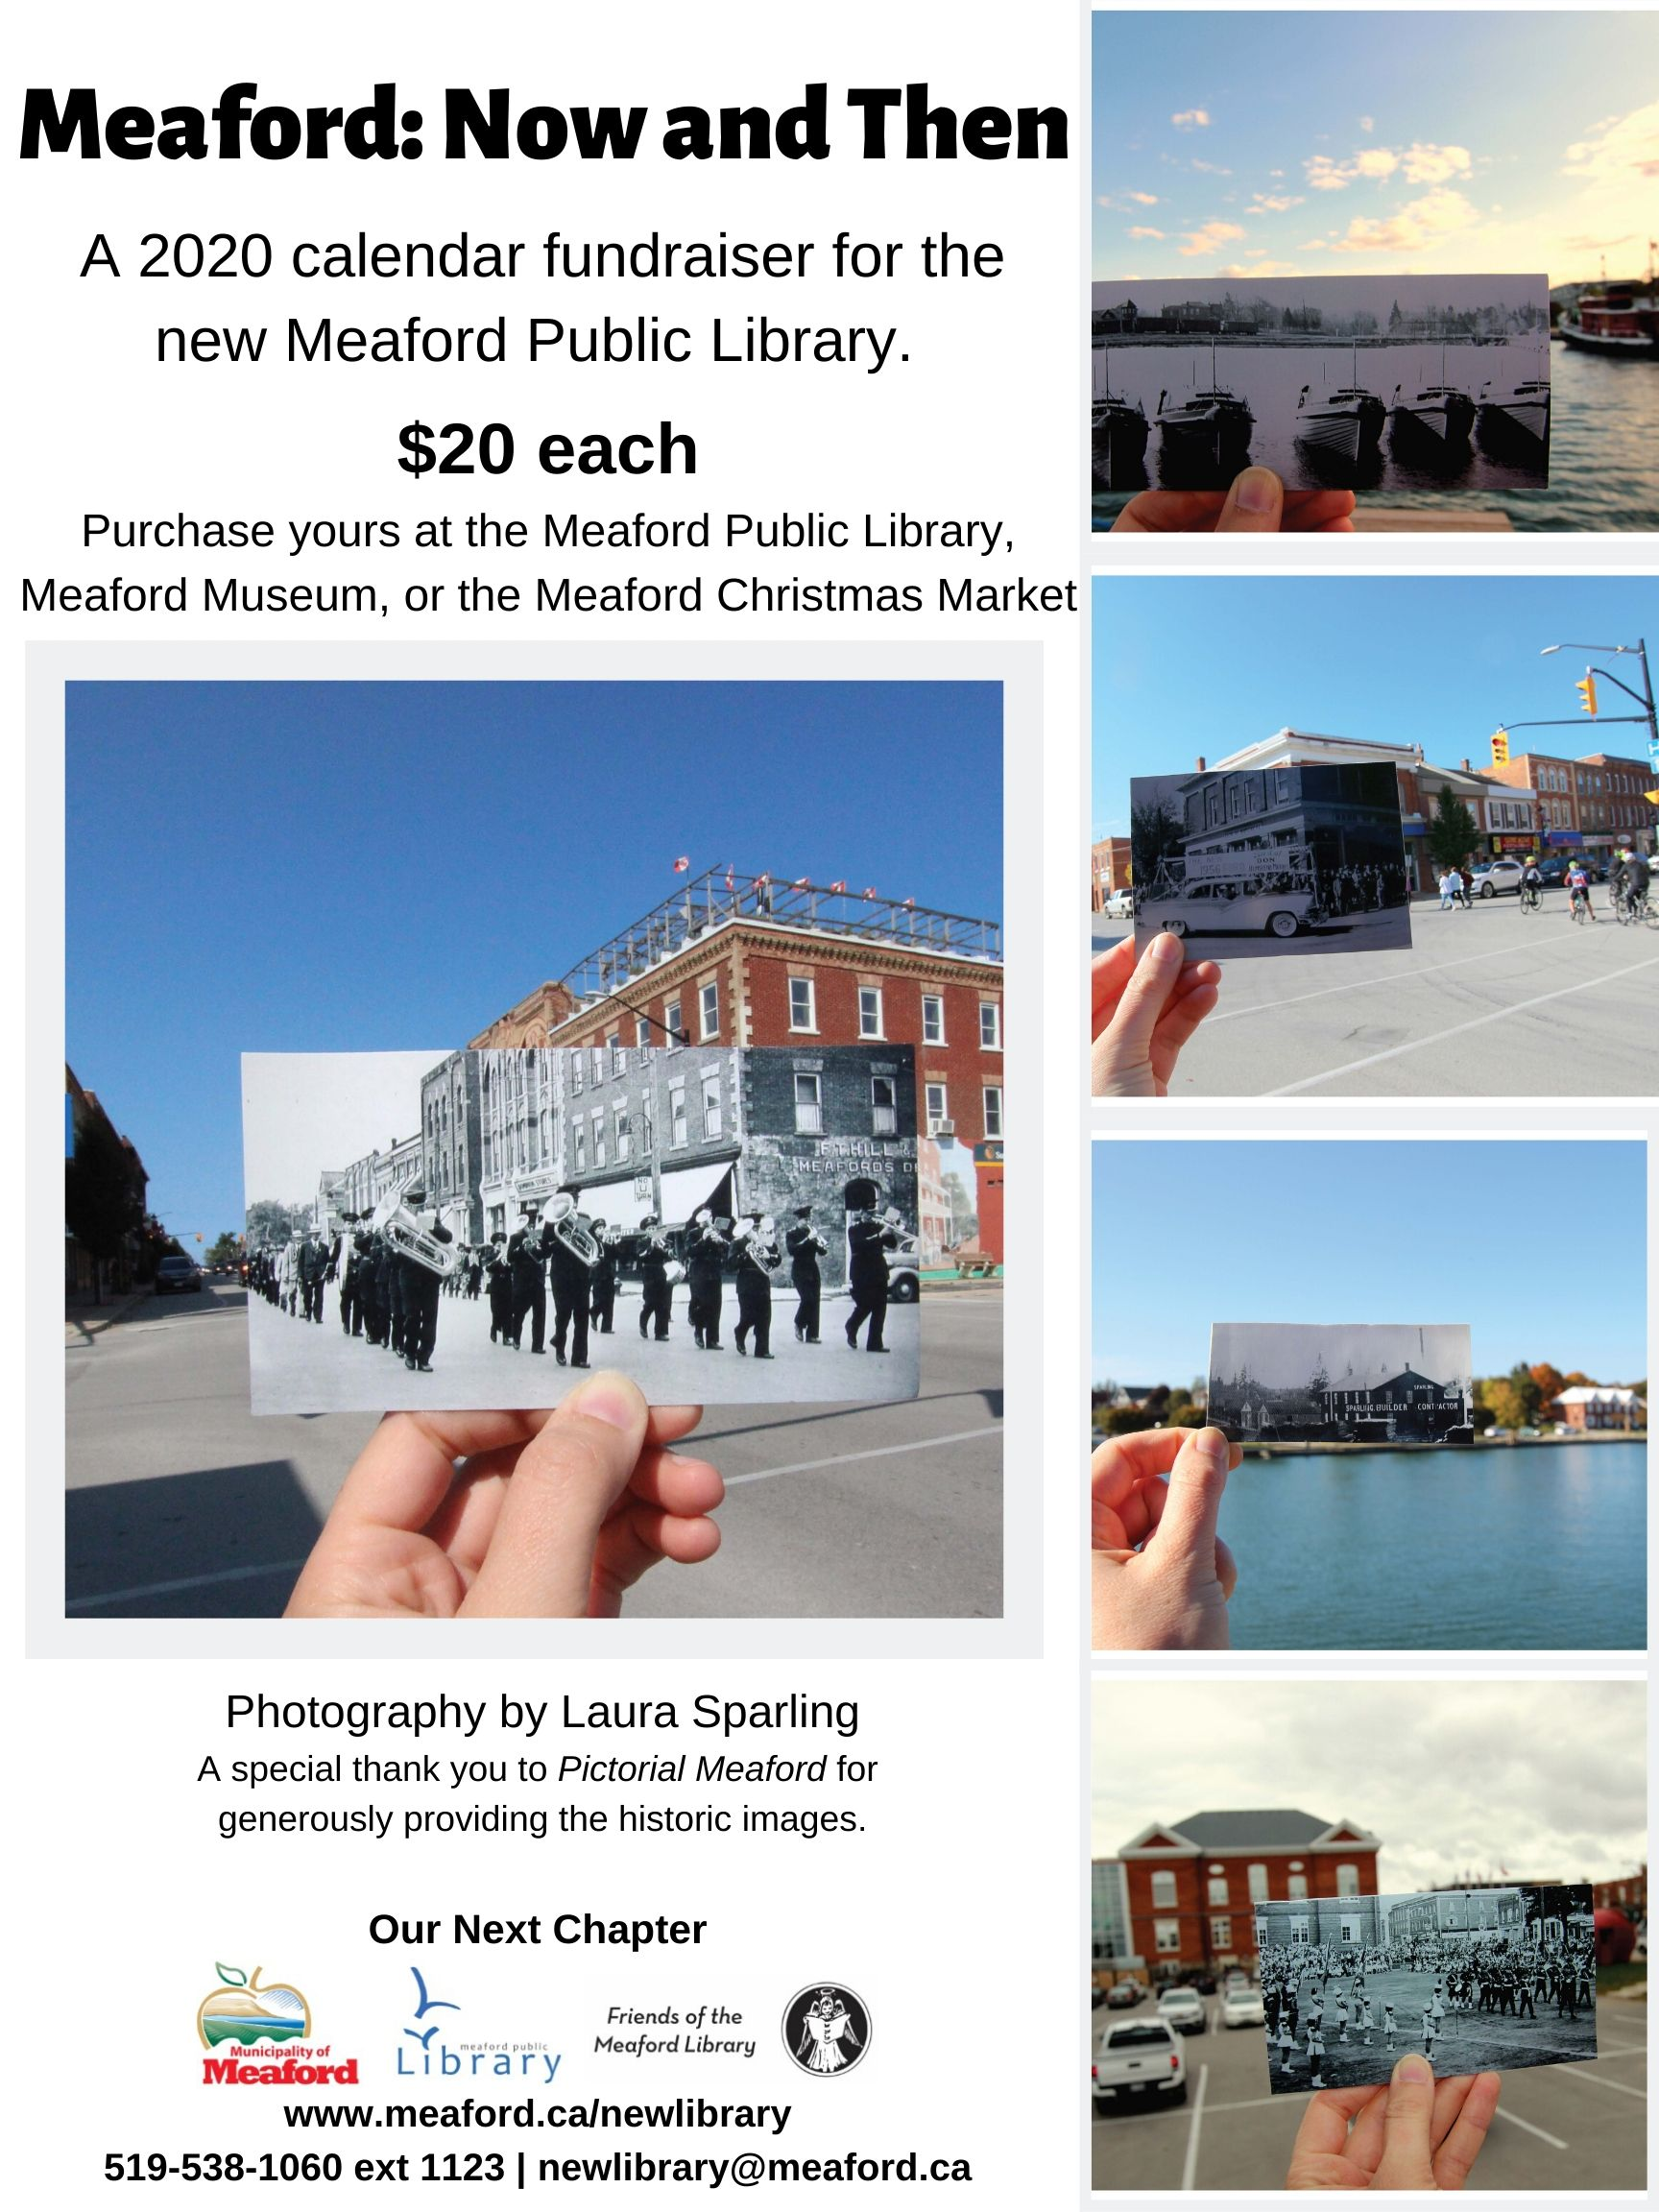 Photos of modern day Meaford with an image of past Meaford layred in front